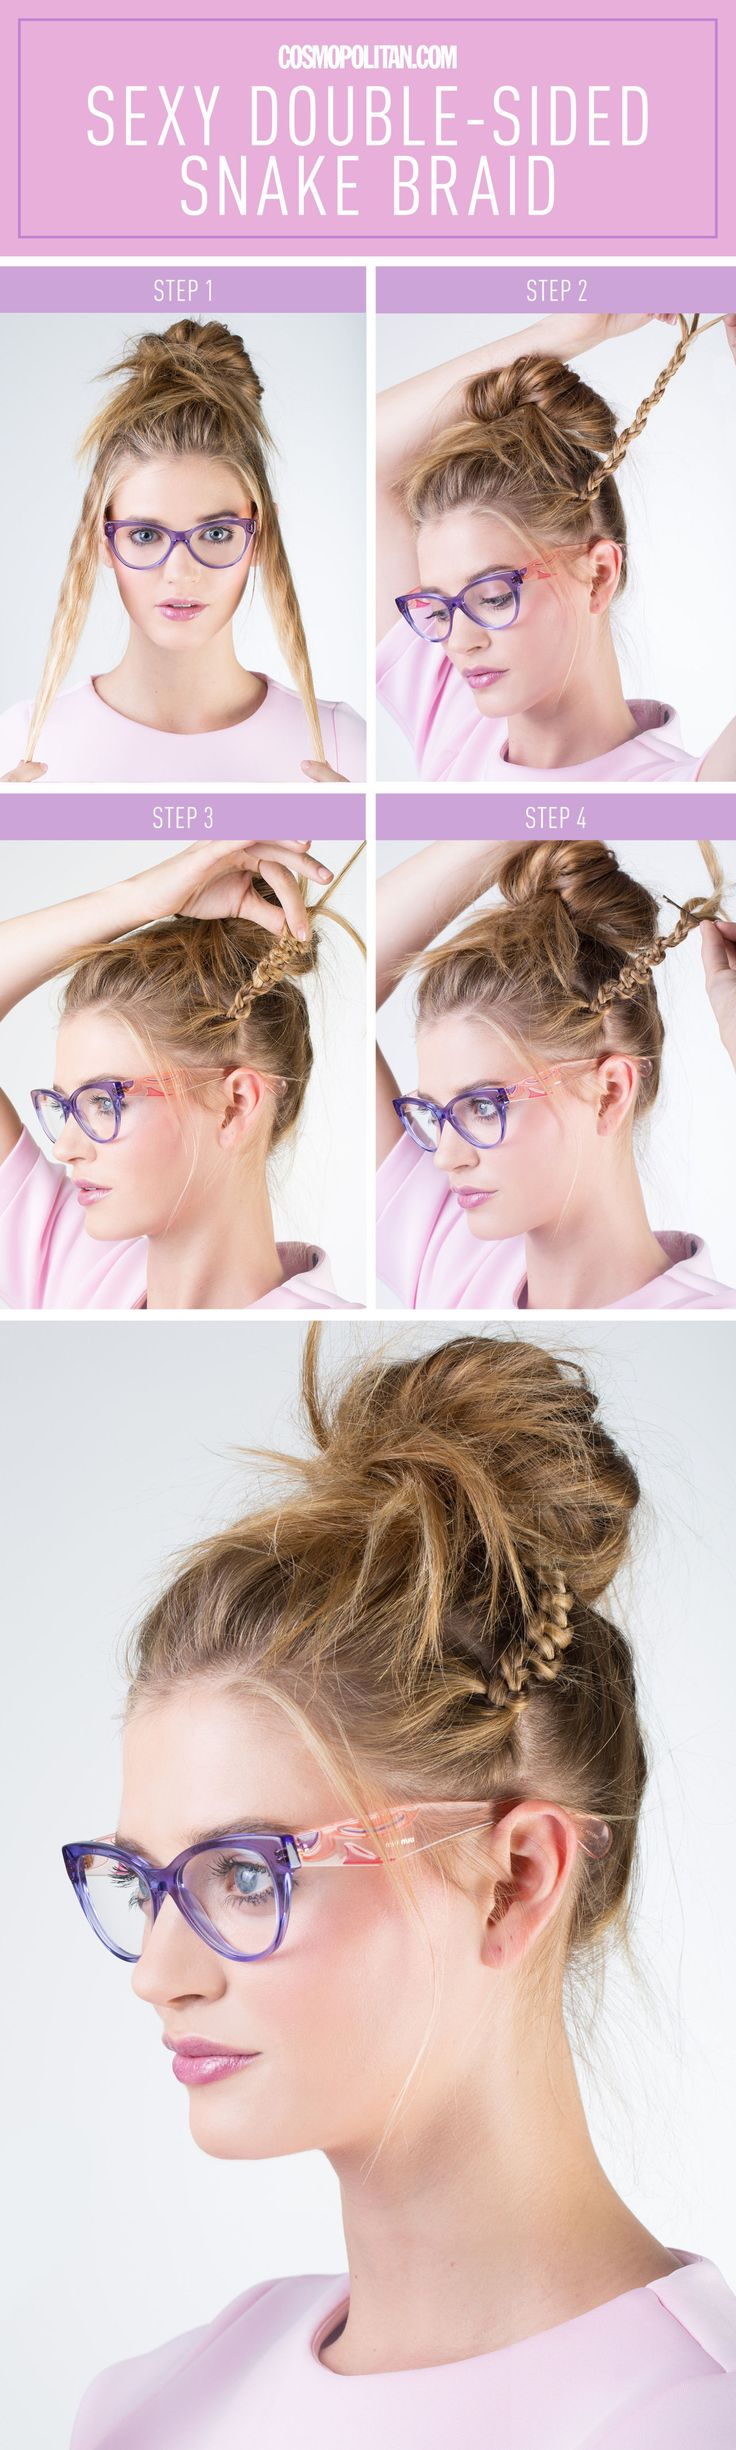 MESSY BUN SNAKE BRAID TUTORIAL: On days when looking perfect is just impossible and you only have a few minutes to get out the door, never fear: the snake braid is here. Hairstylist Cash Lawless came up with a new twist on a traditional braid for Cosmopolitan.com. Click through to learn how exactly to execute this relaxed and pretty style. Find more easy and gorgeous hair ideas and tutorials at Cosmopolitan.com.